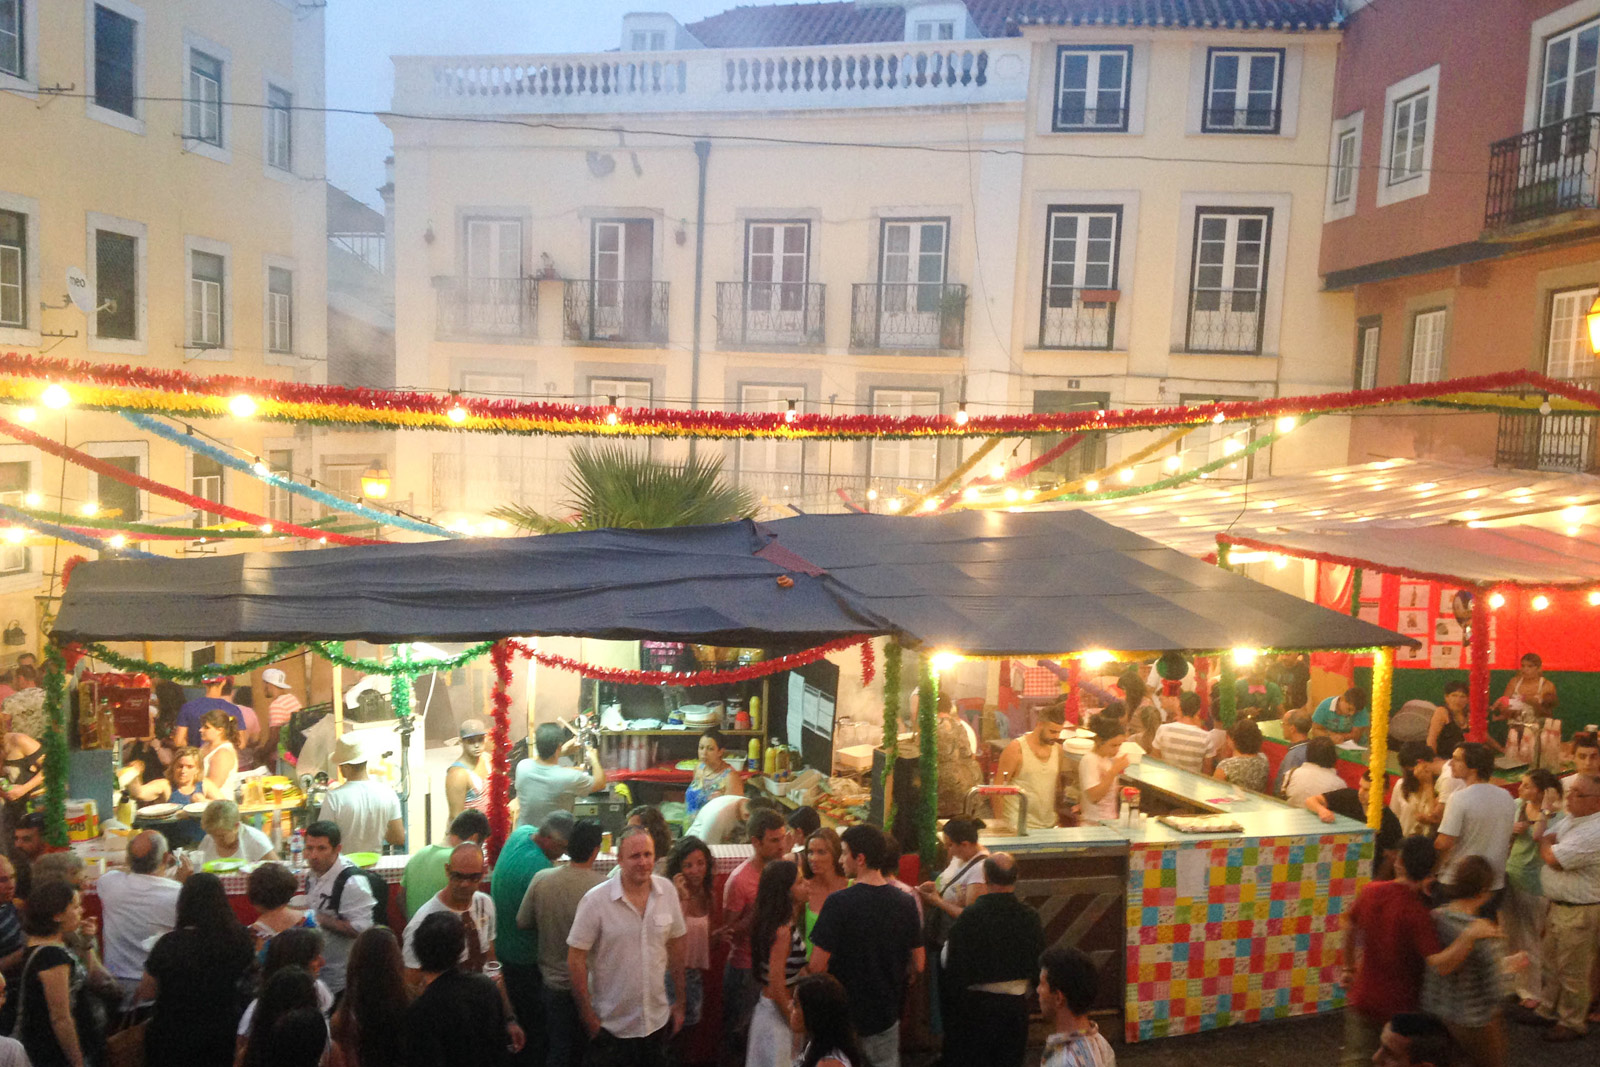 Outdoor evening restaurants and food set up in the squares of Alfama, Lisbon